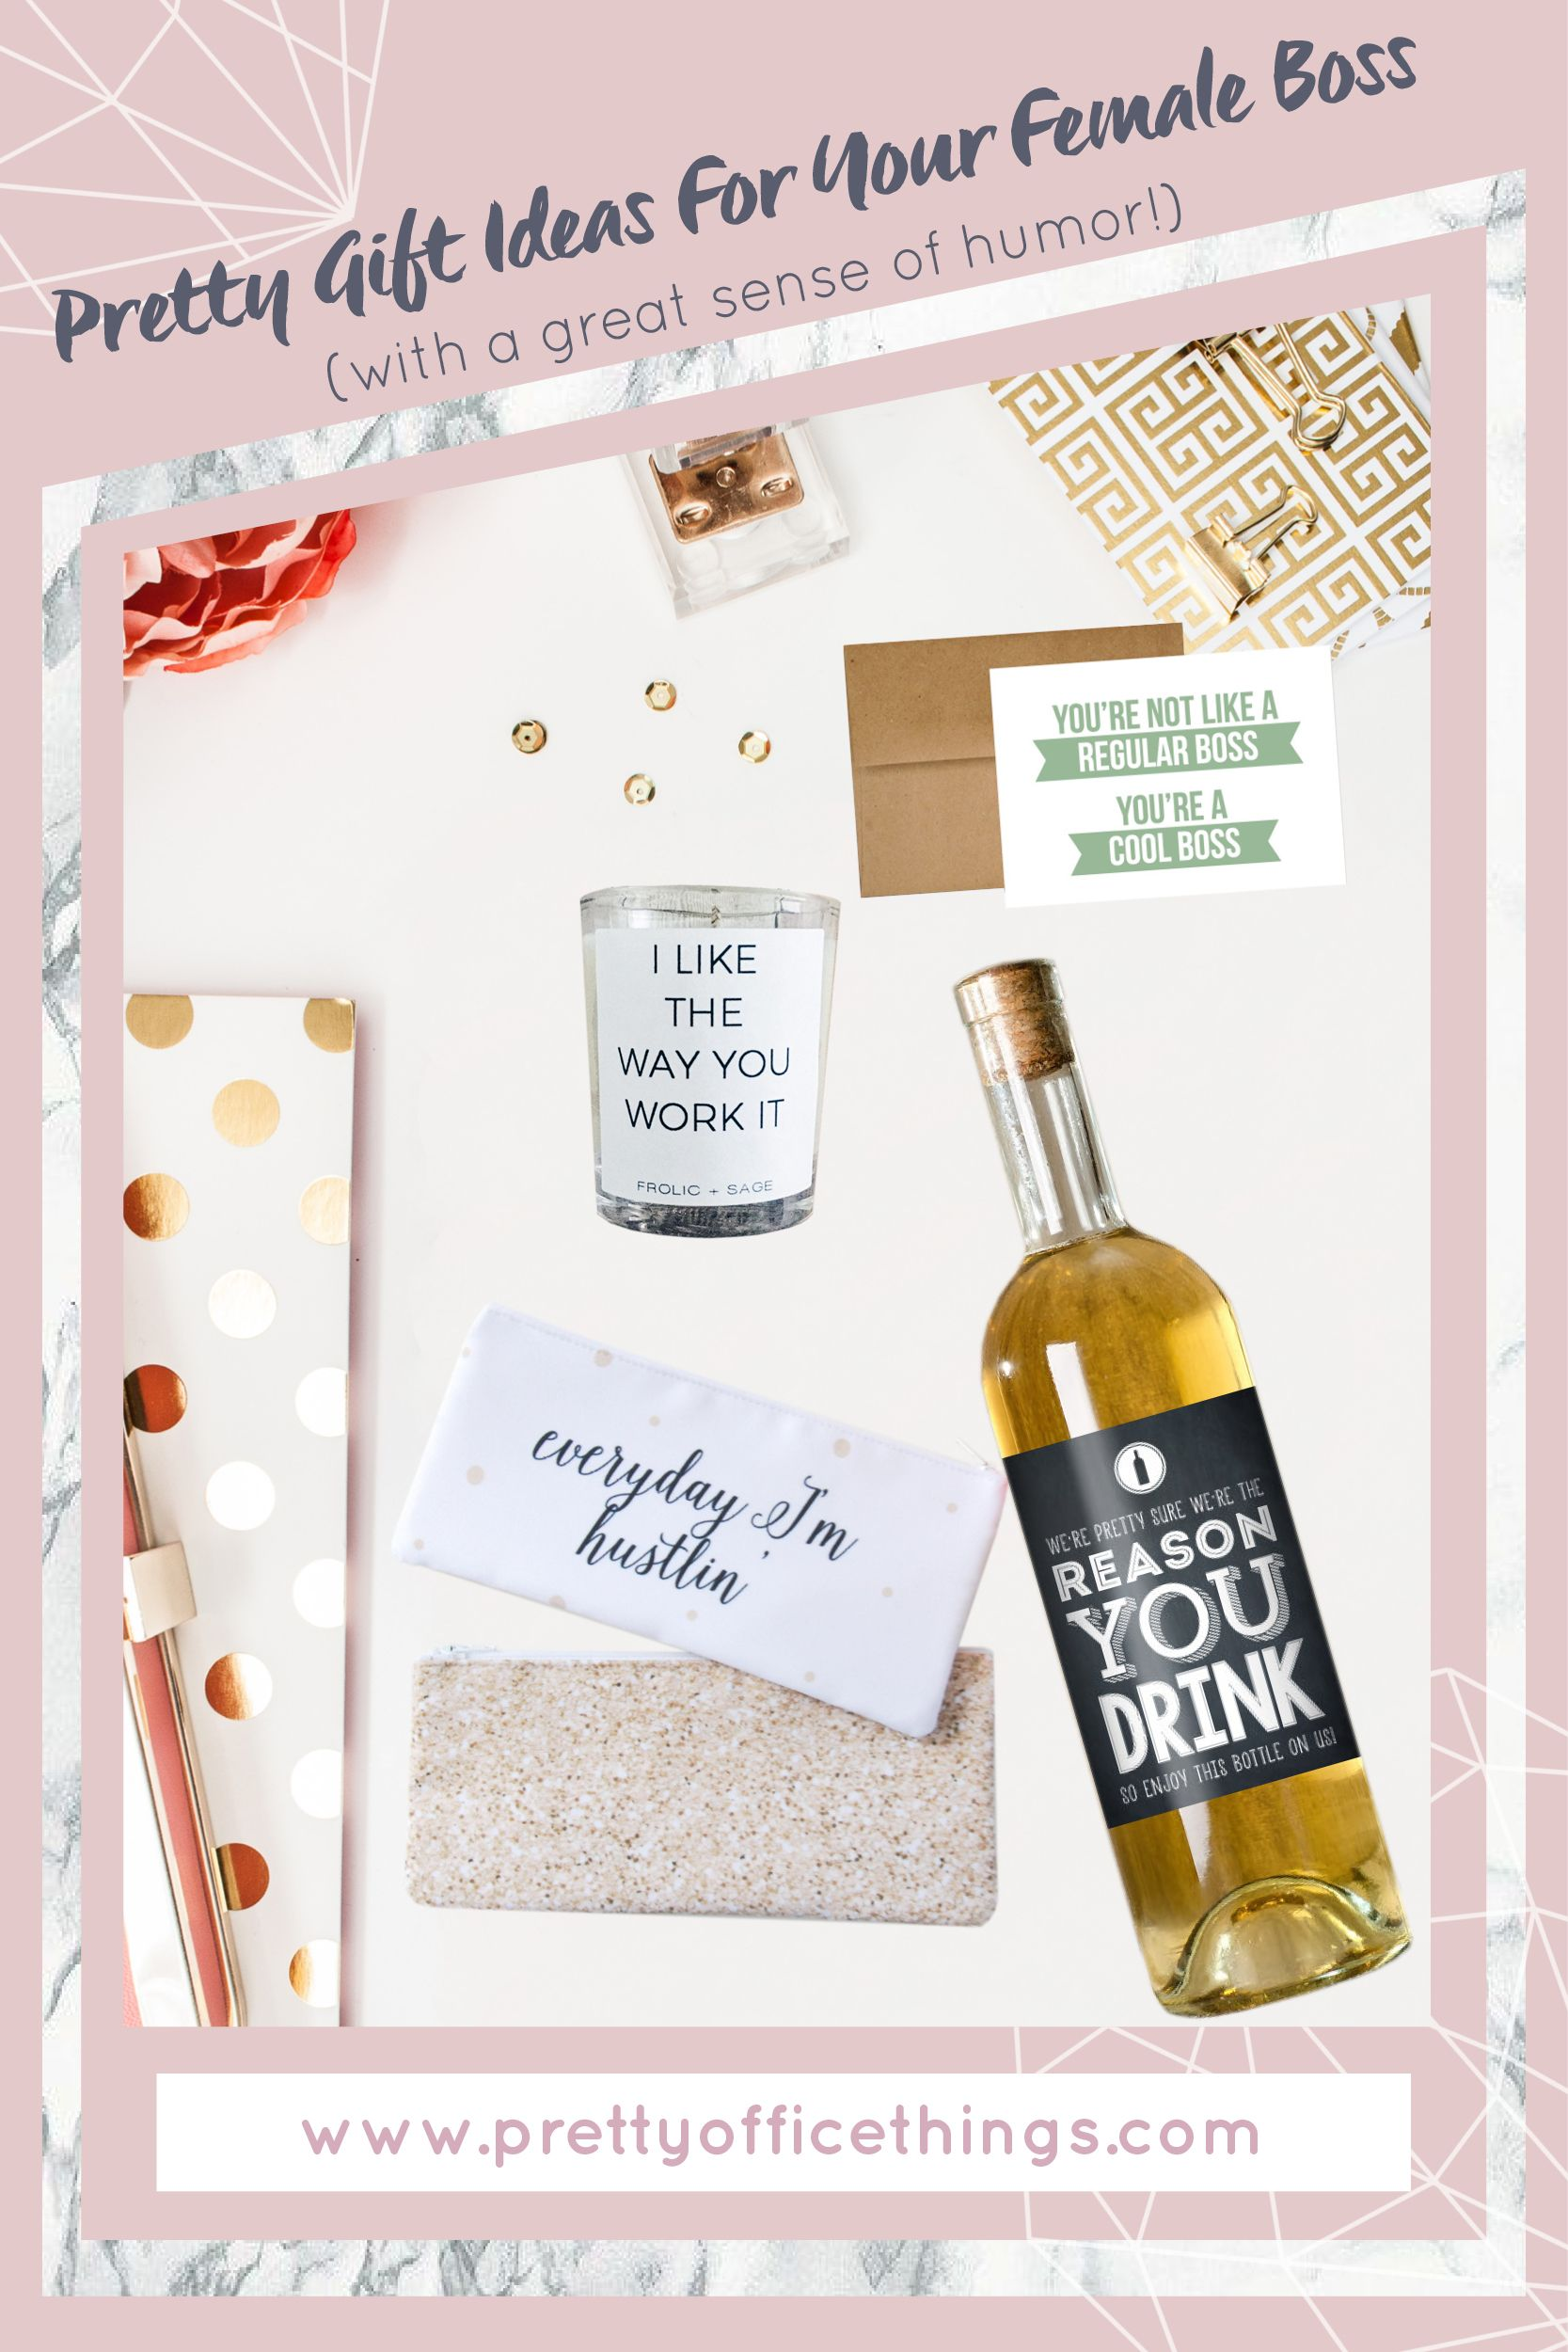 Christmas Gifts For Your Boss Female.Pretty Gift Ideas For Your Female Boss With A Great Sense